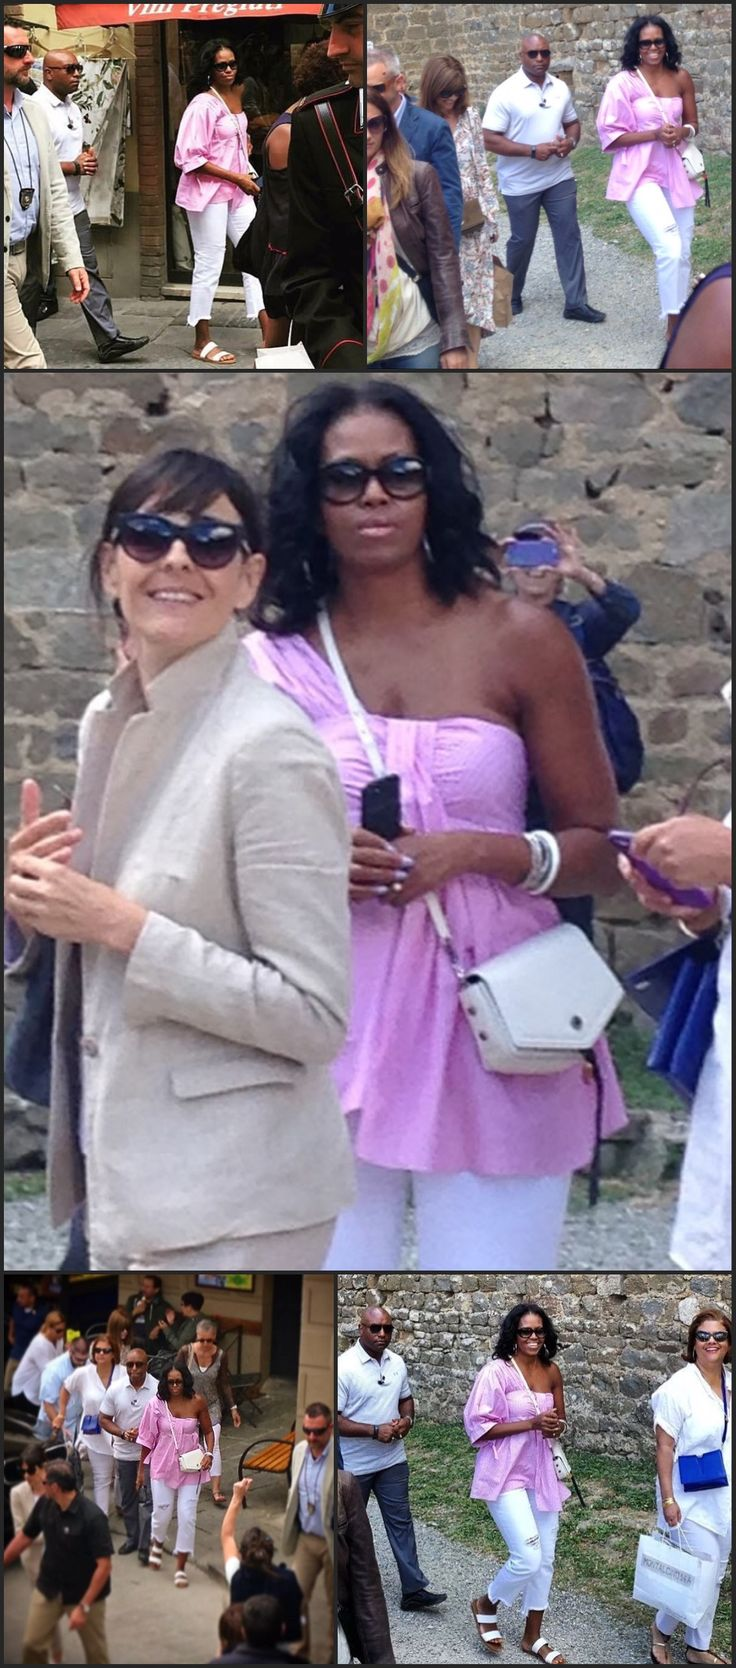 Former 44th President BarackObama and former FirstLady Michelle Obama arrived in Tuscany, Italy on a private plane flew into a Tuscany militray base on Friday May 19, 2017 escorted by six fighter jets and a 13 car motorcade for five days in a $15k-a-night private villa First Lady Michelle Obama in Montalcino, Italy May 20, 2017